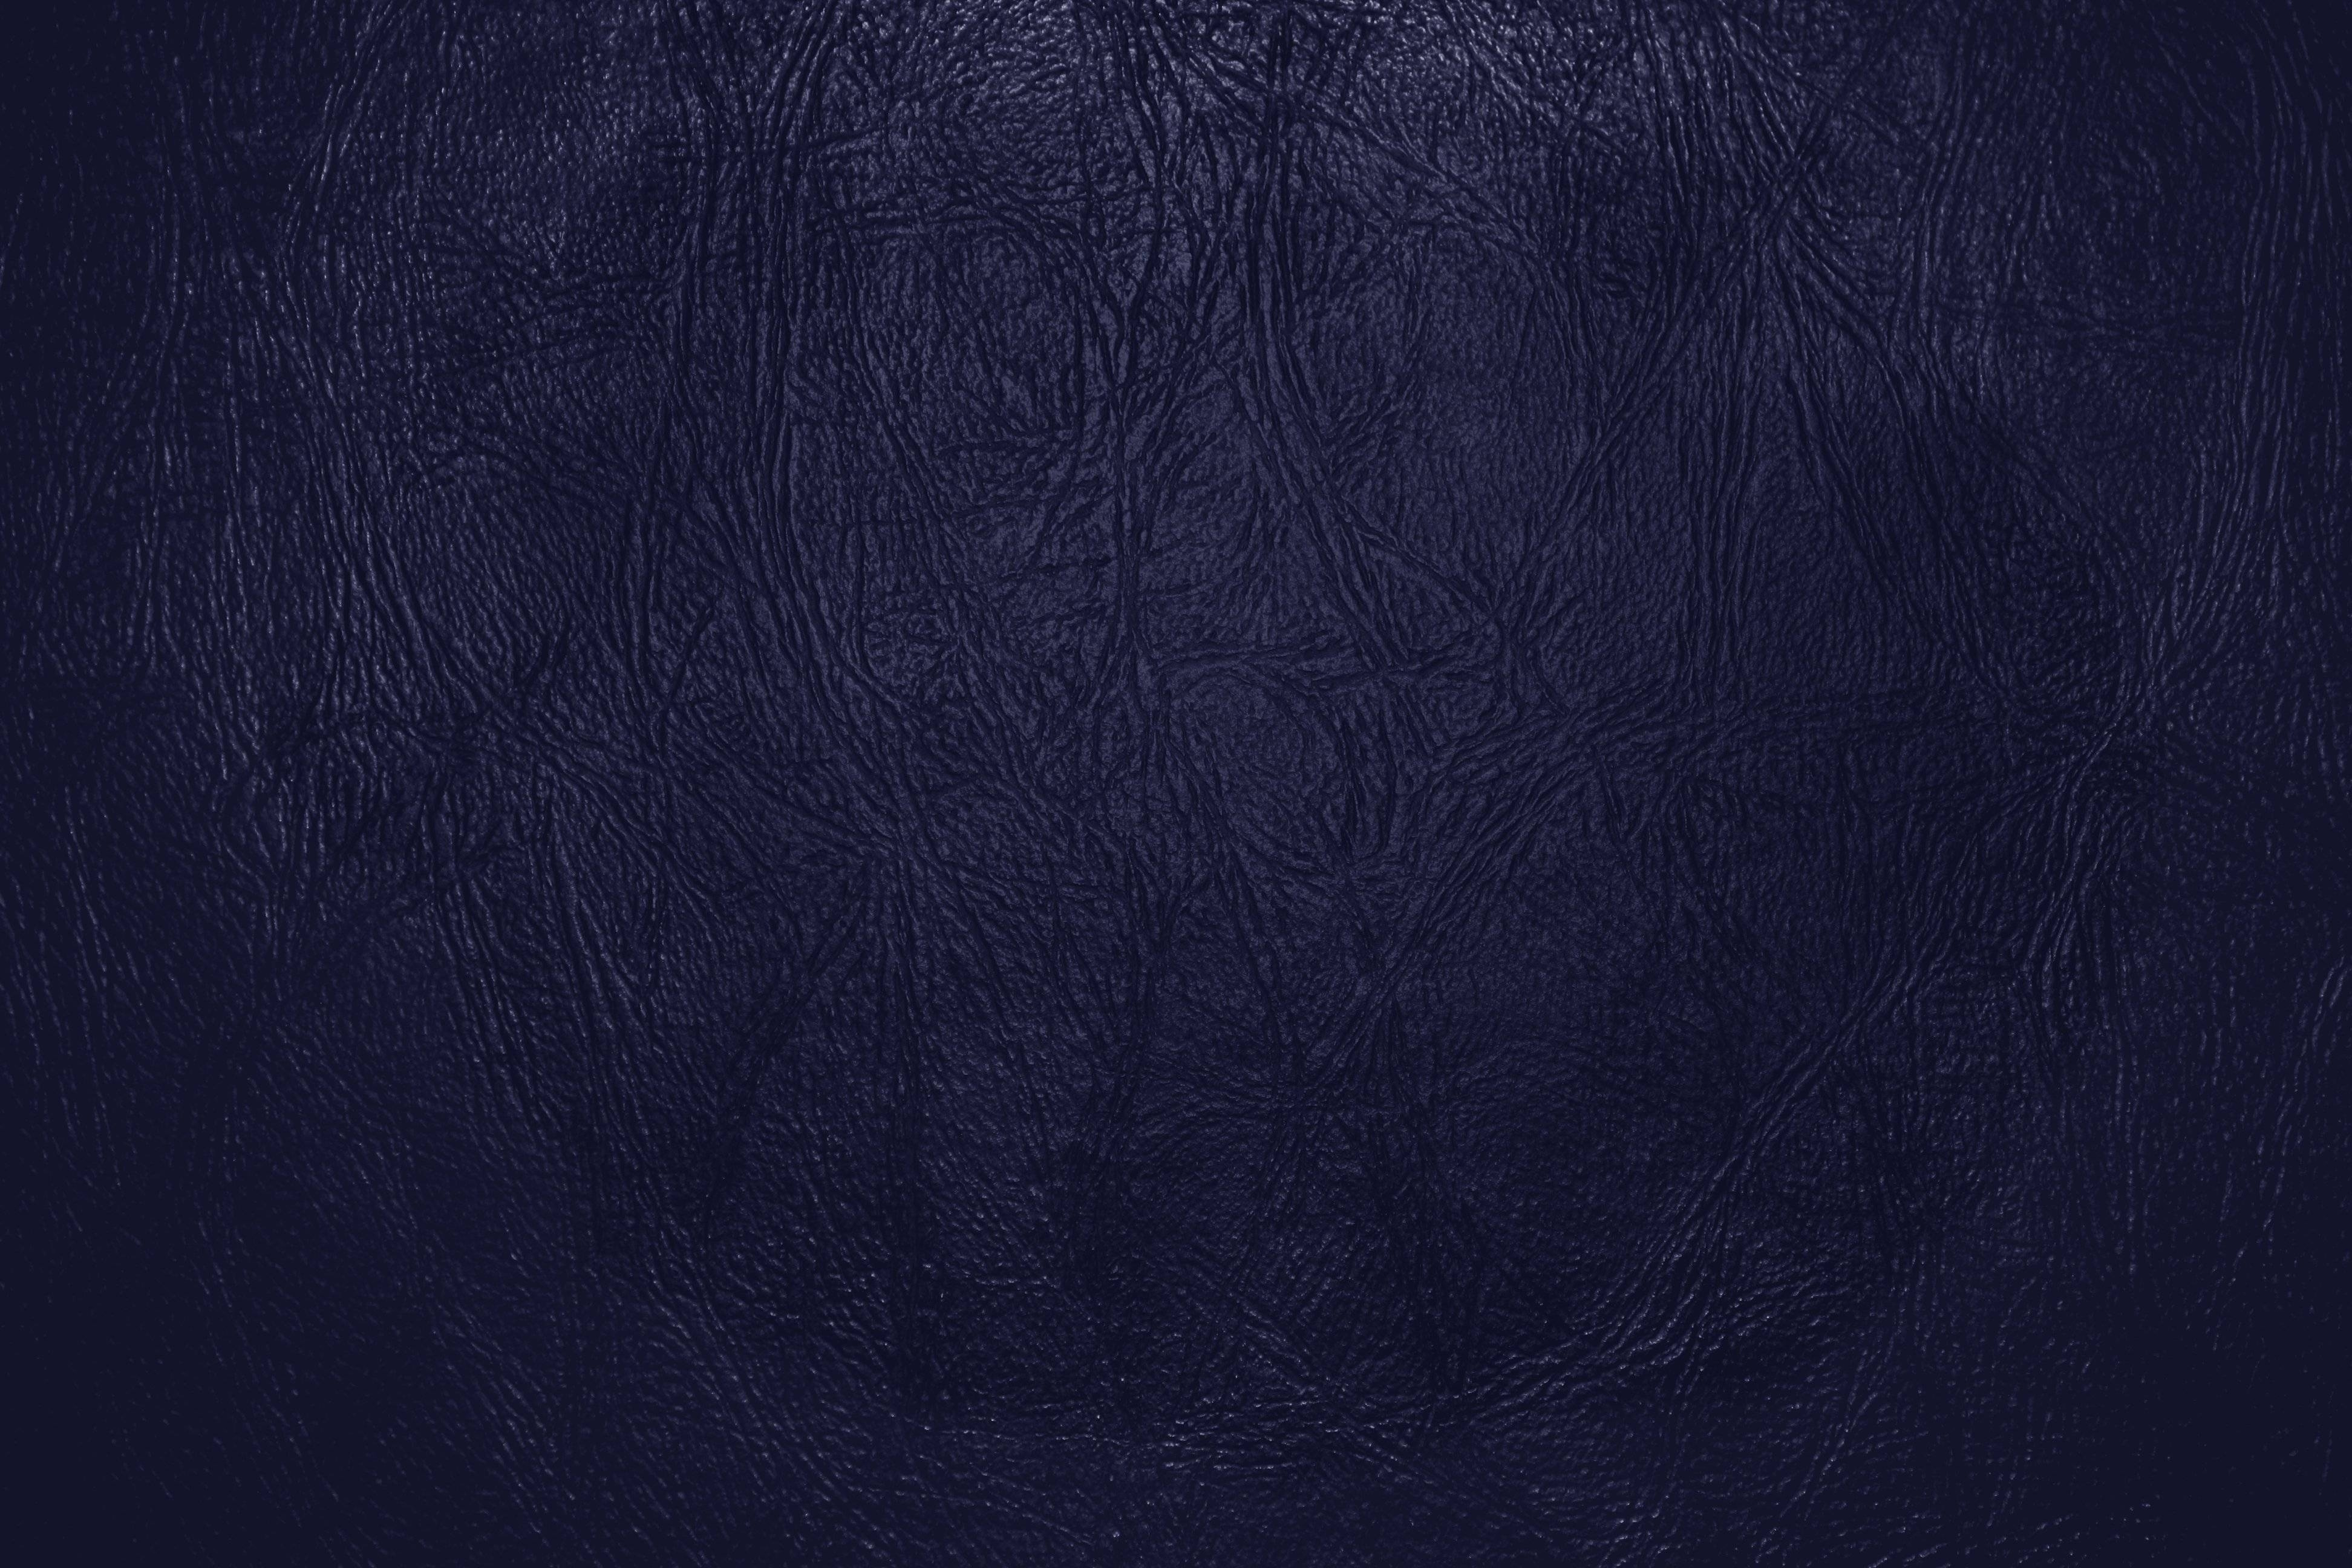 navy blue backgrounds - wallpaper cave | all wallpapers | pinterest